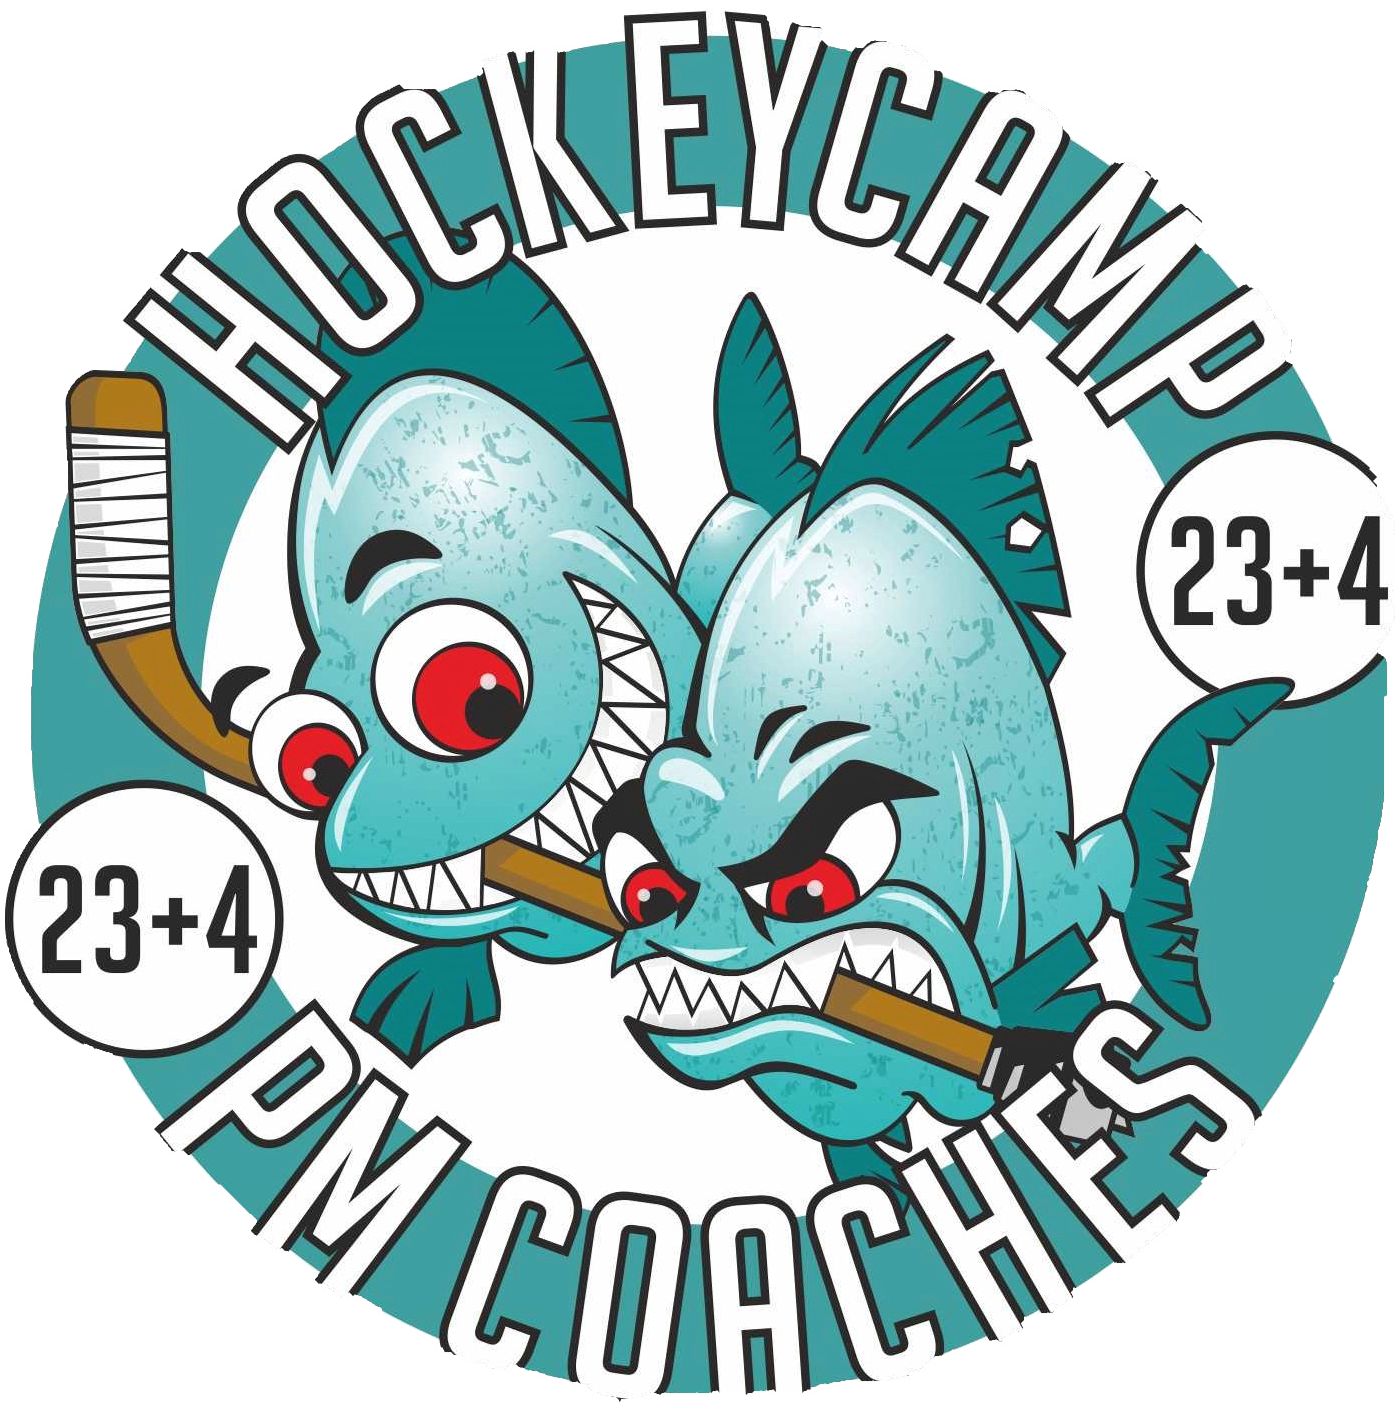 Killahockey Eishockey Camps - PM Eishockey Coaches